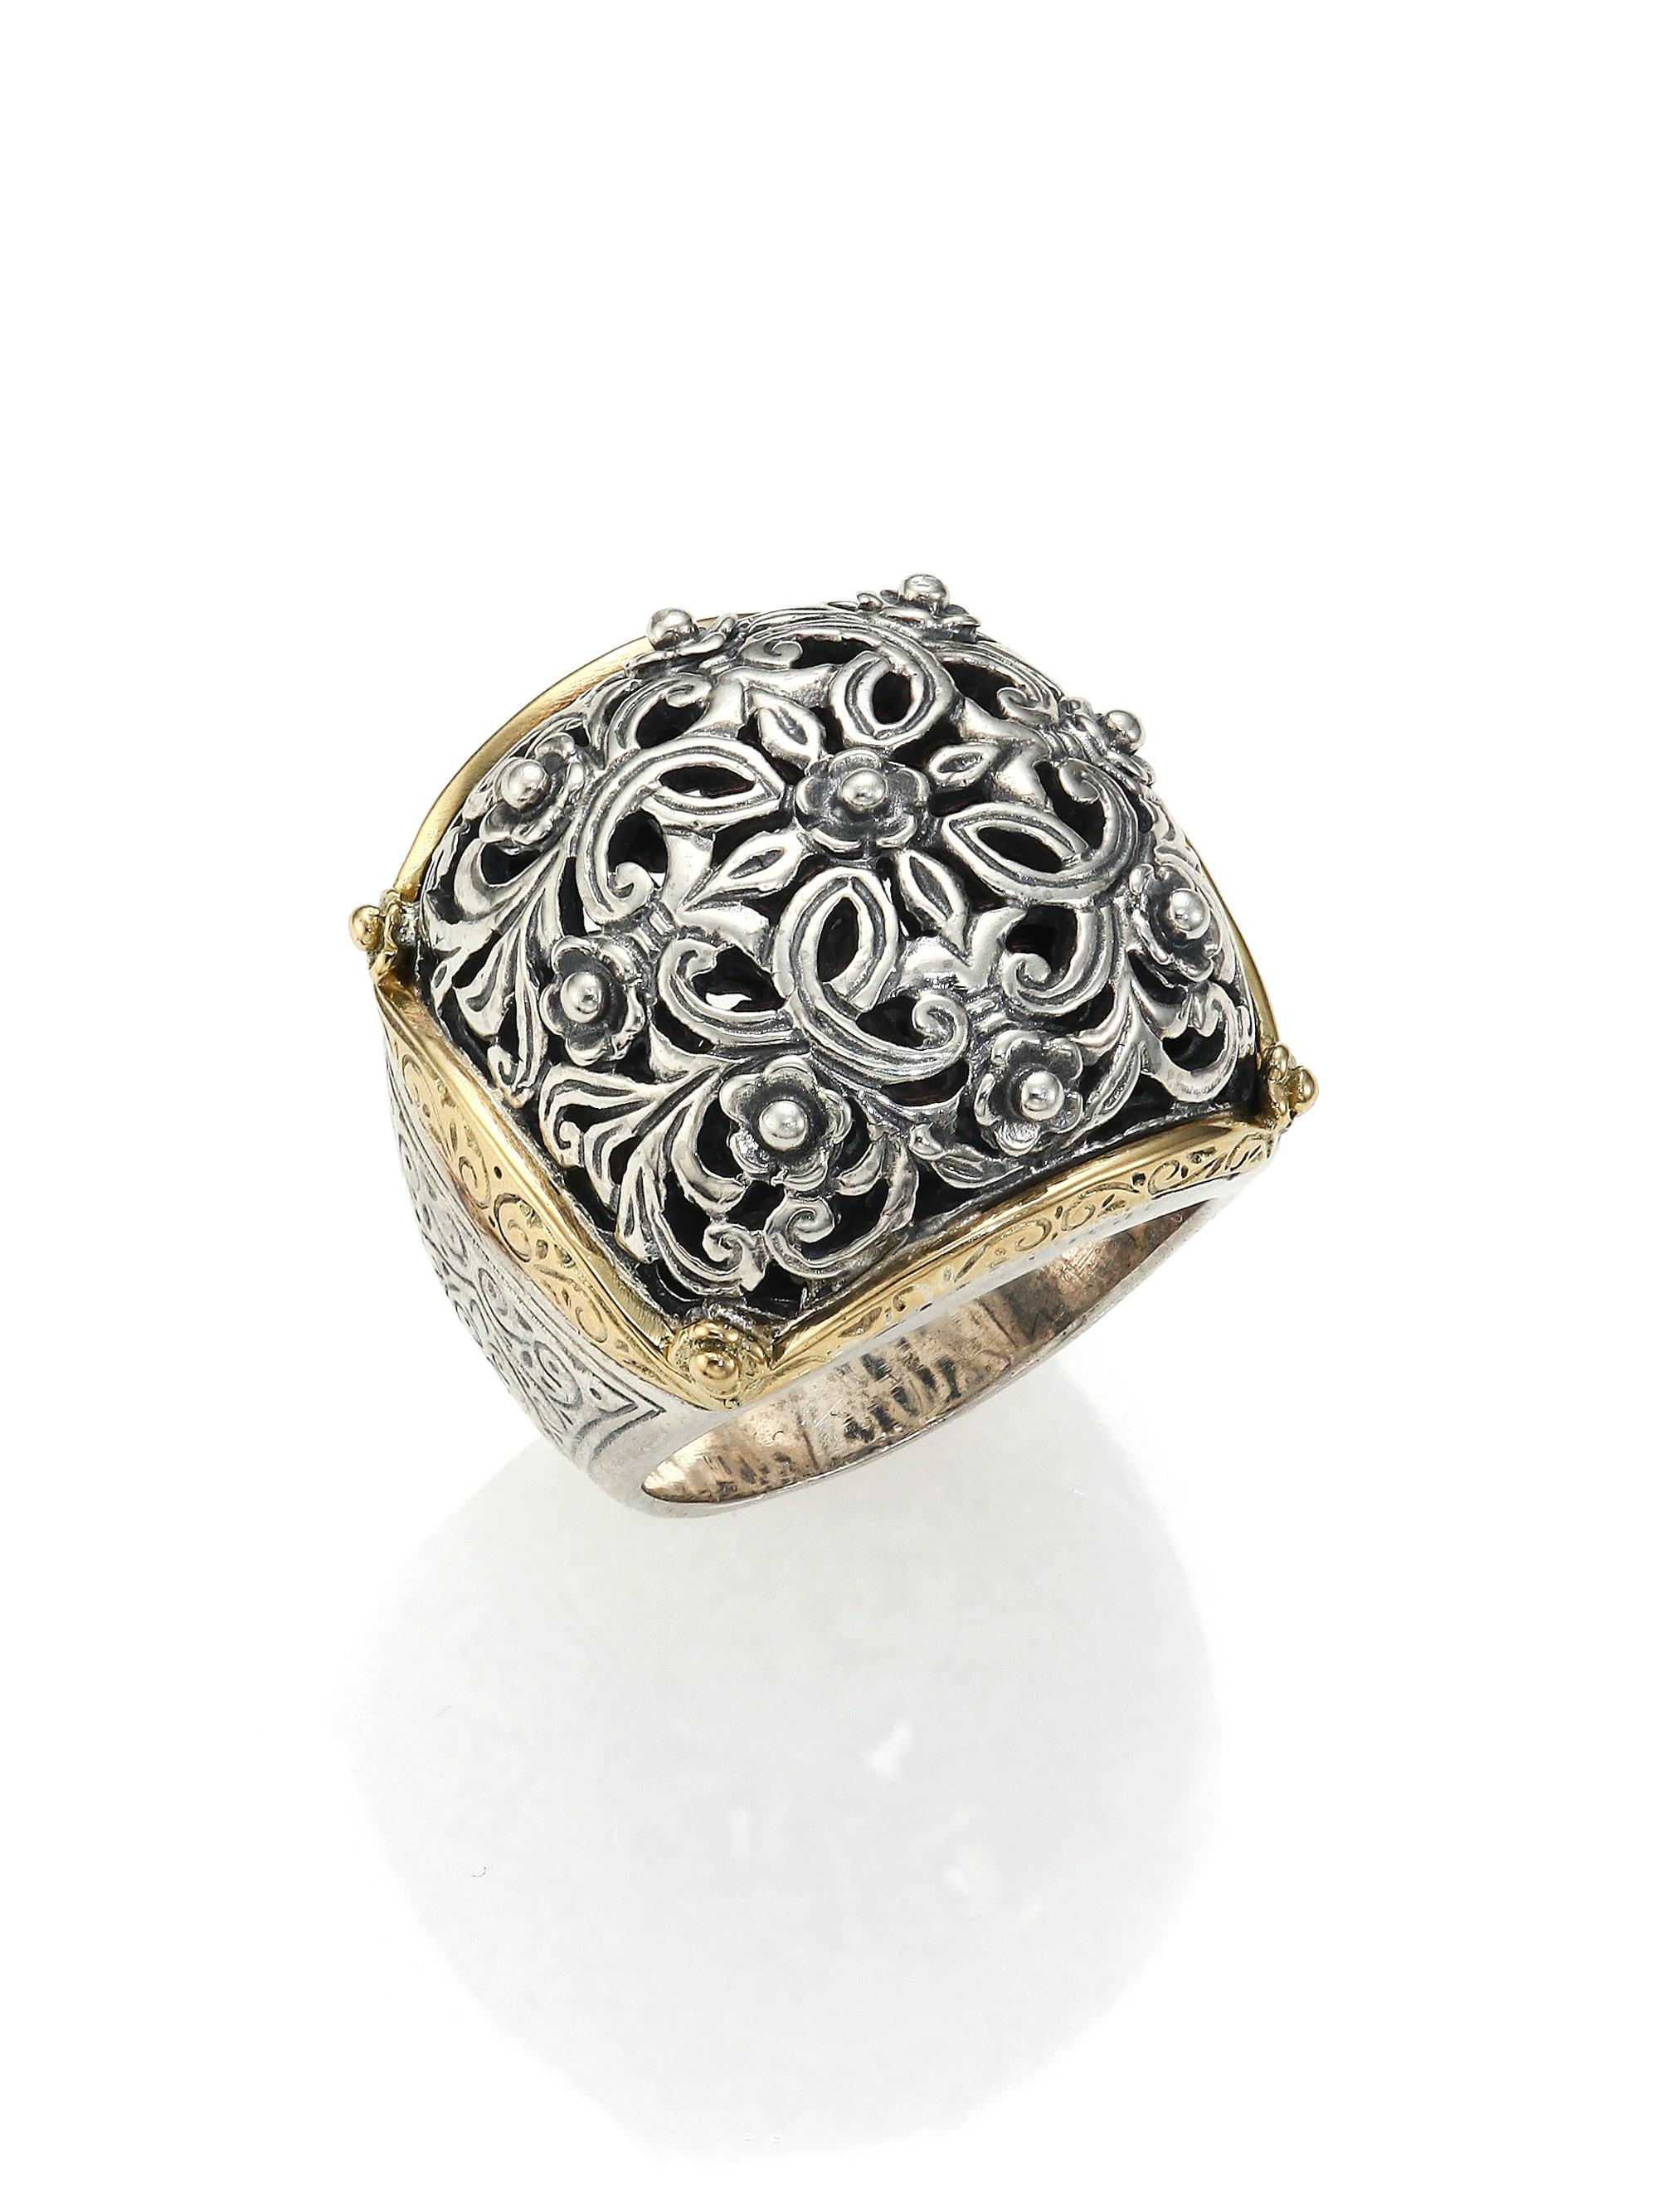 diamonds band bands white gold and ring with filigree rpse rose zukq chocolate